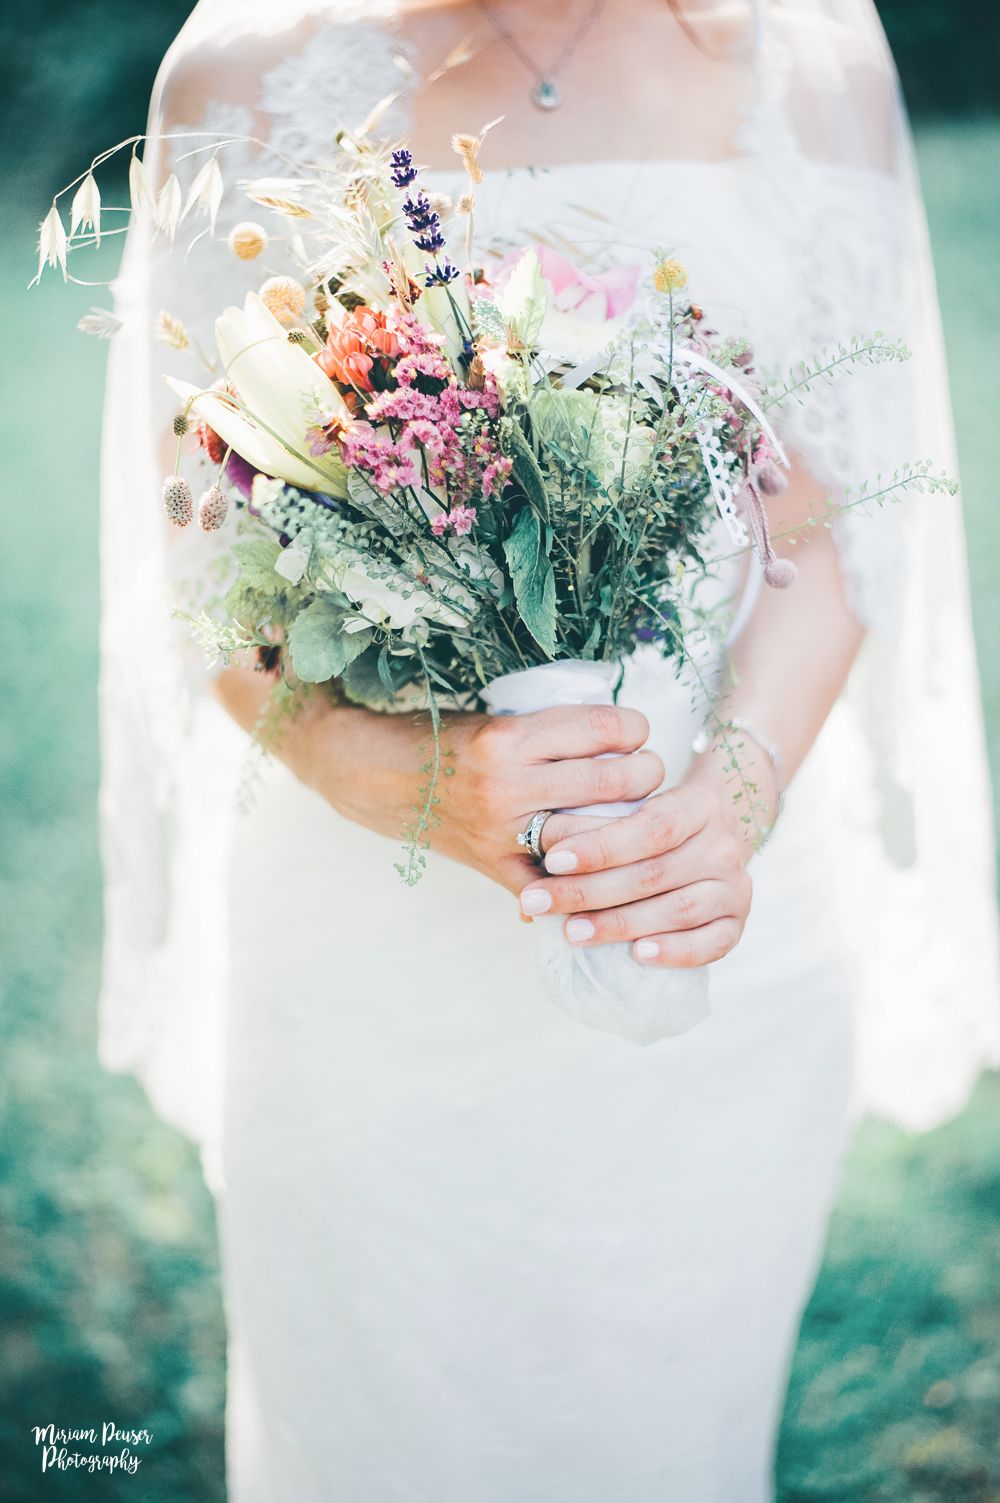 Messy and big wildflower bridal bouqet - the bigger, the better!  by Miriam Peuser Photography